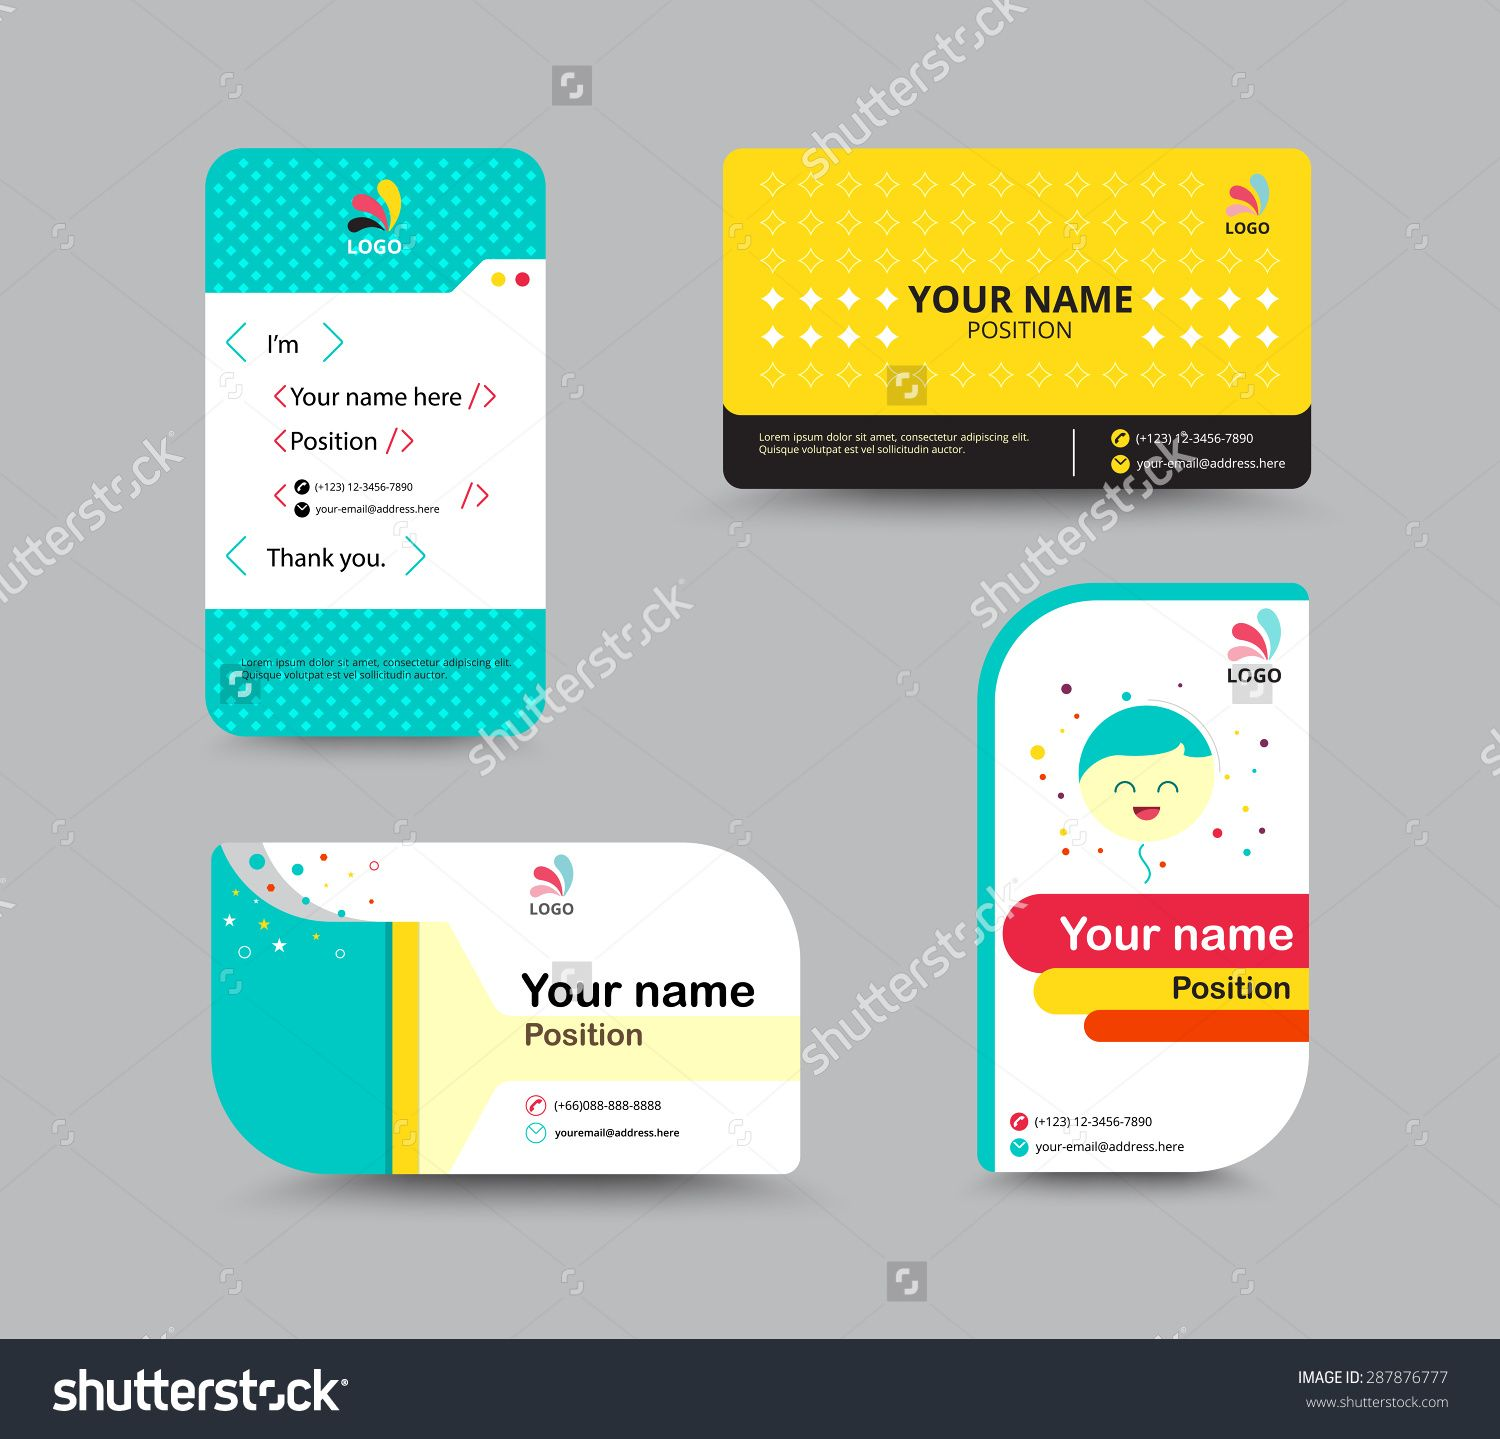 Name card google card pinterest contact card template business name card stock vector 287876777 shutterstock fbccfo Choice Image